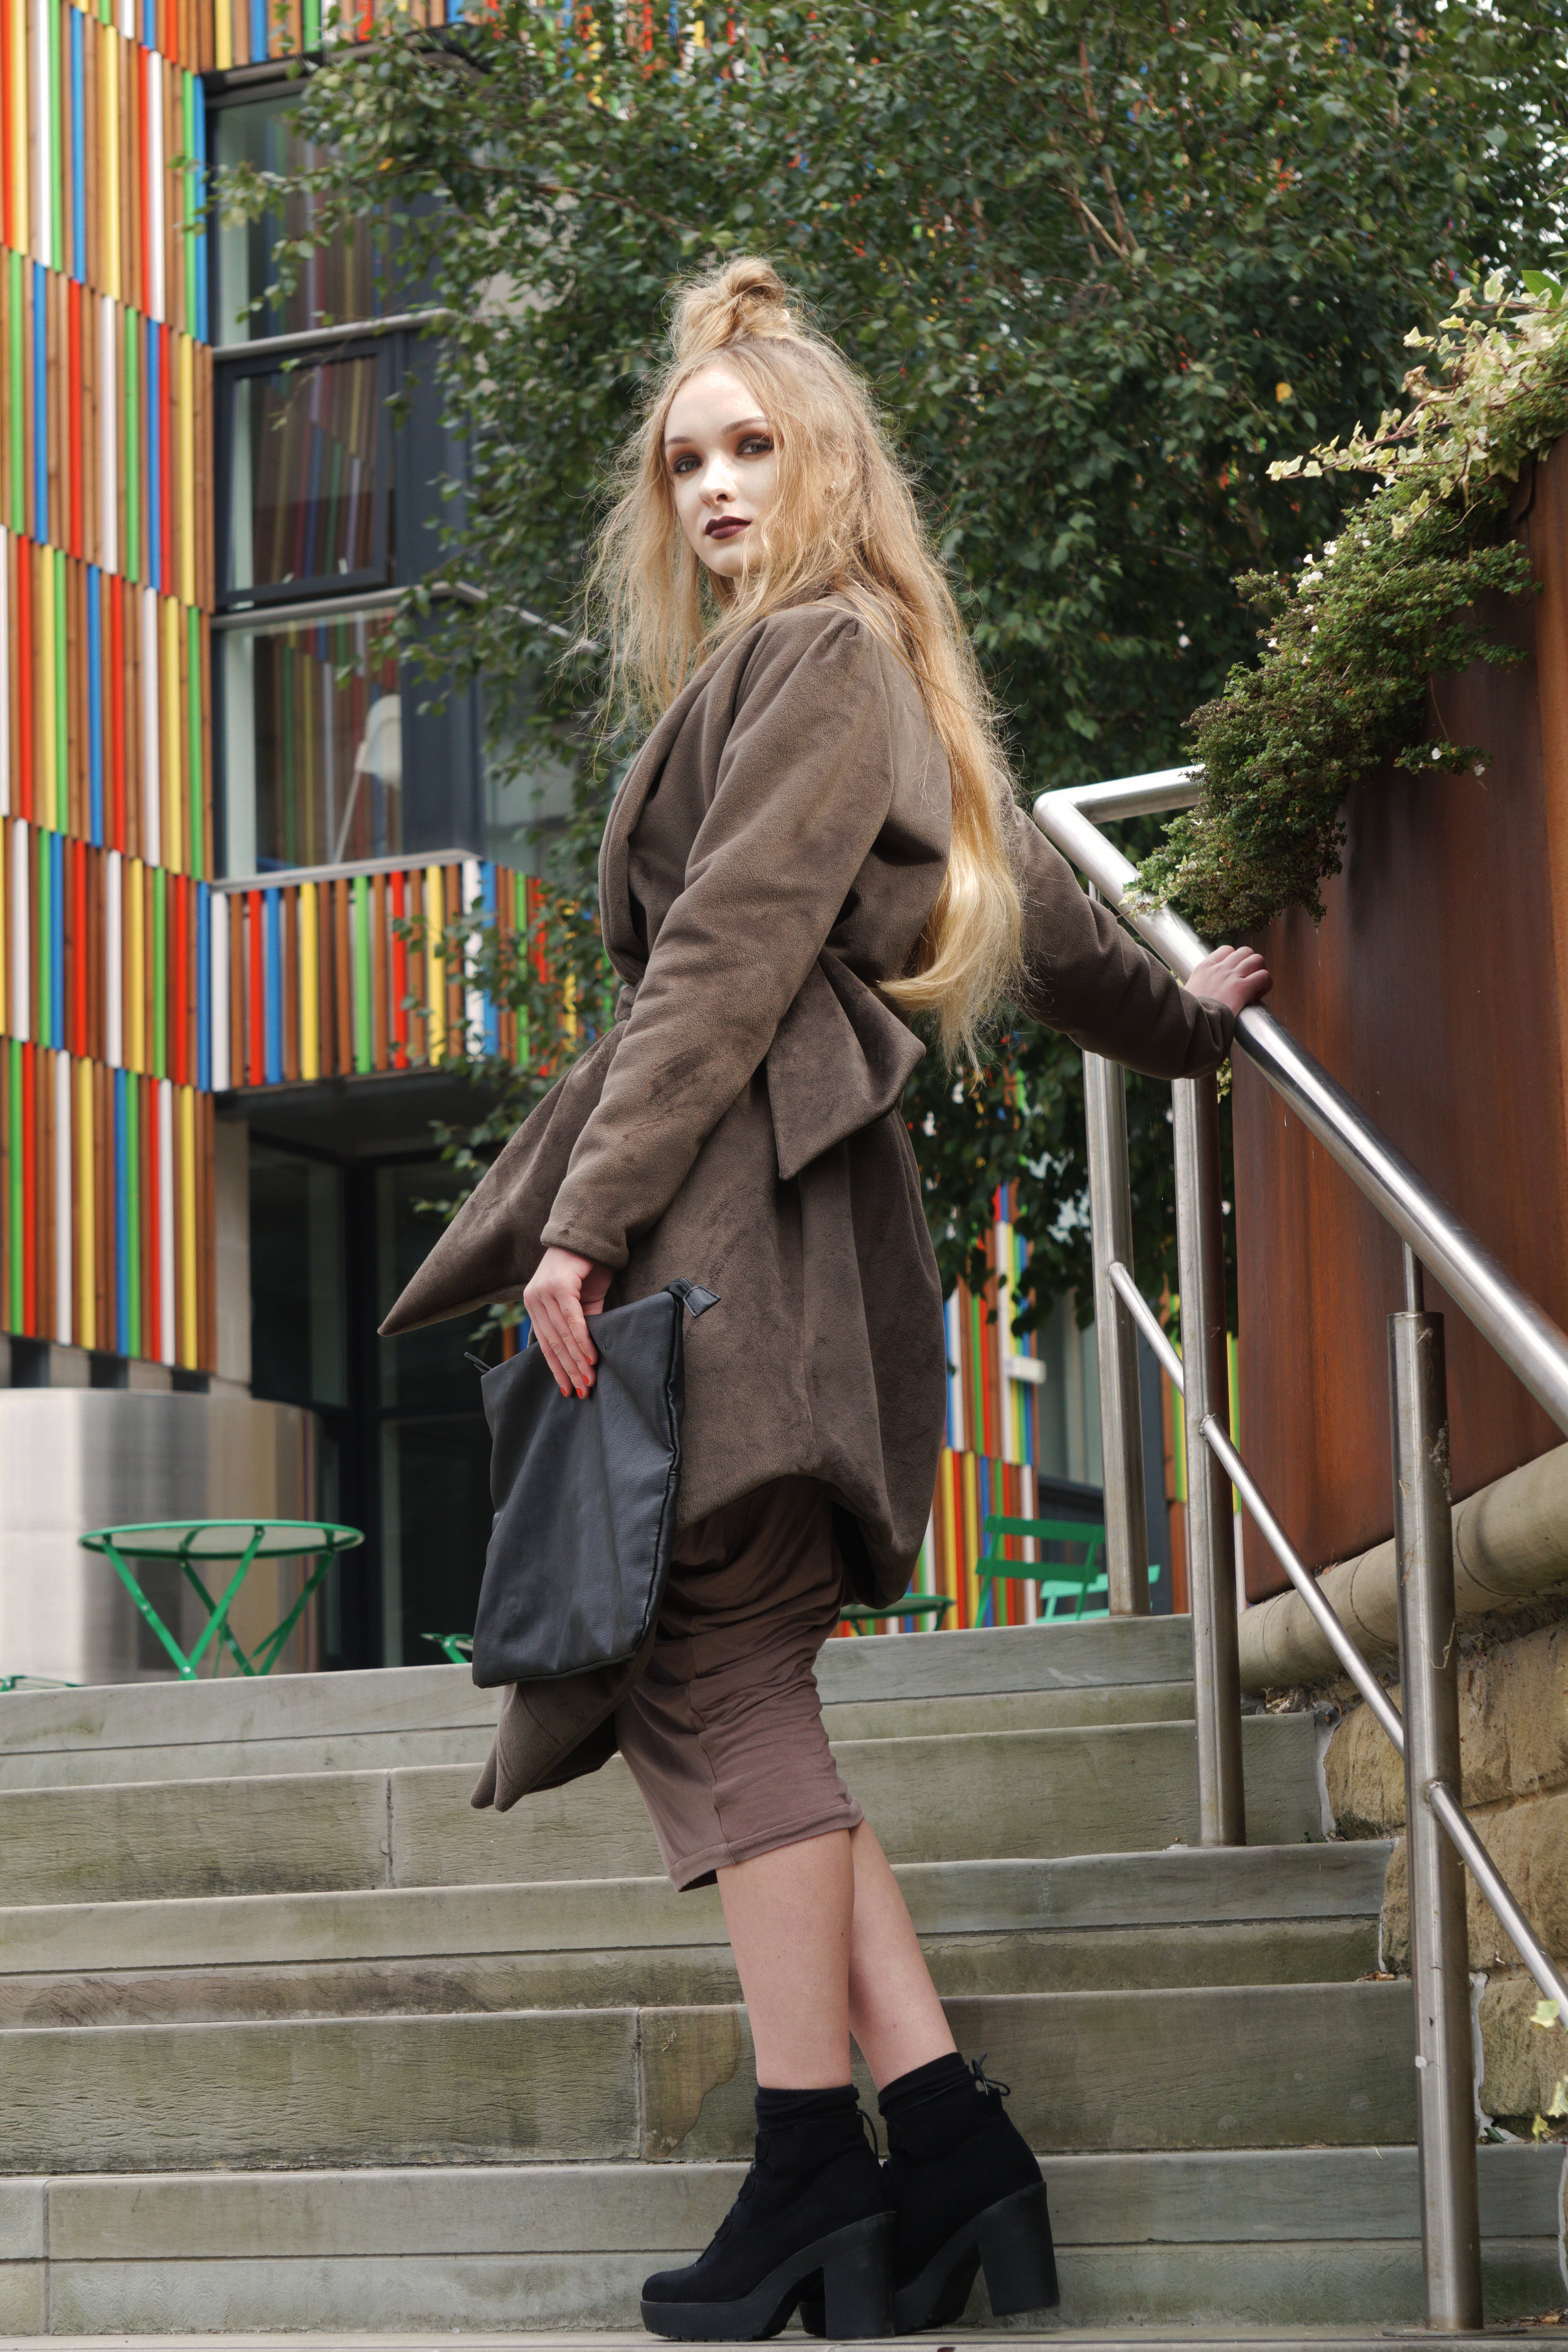 zaramia-ava-zaramiaava-leeds-fashion-designer-ethical-sustainable-taupe-versatile-drape-yoko-skirt-mioka-black-mai-coat-leeds-dock-grunge-clutch-bag-11